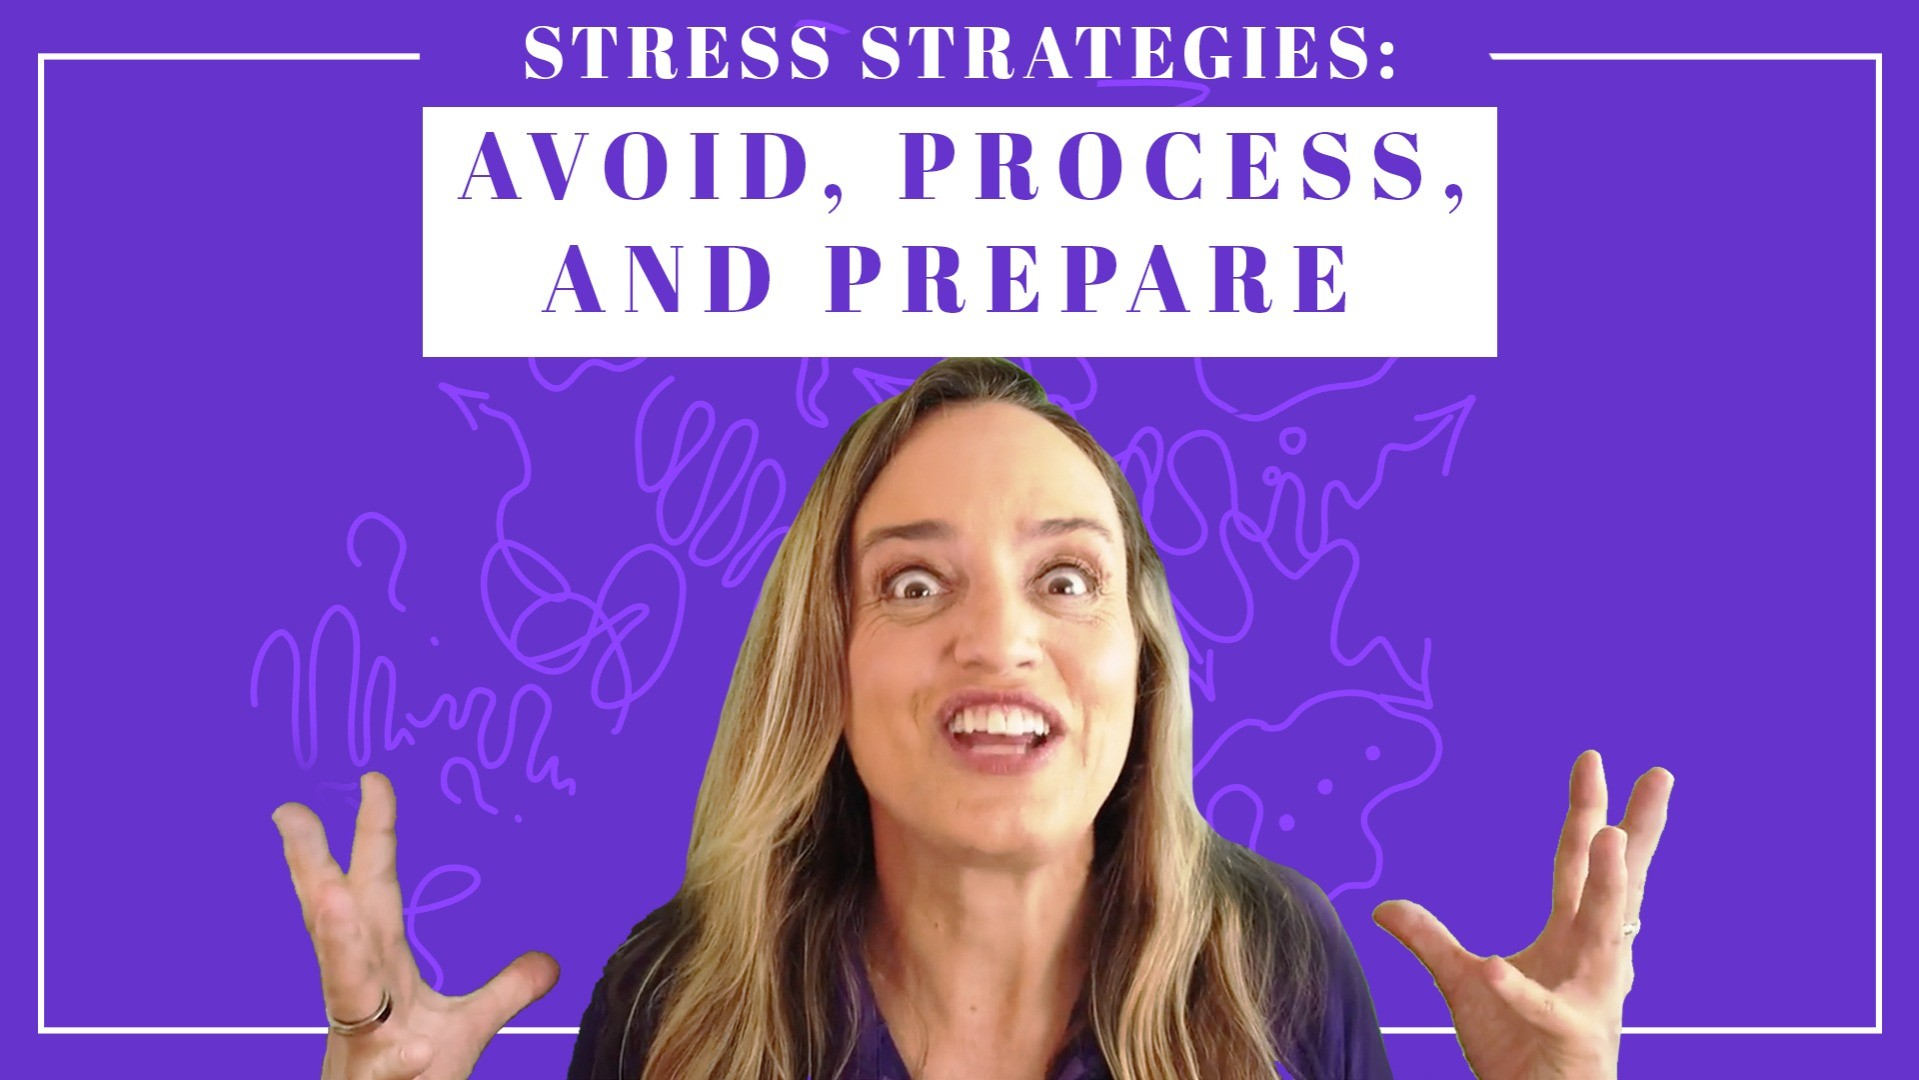 AppSumo Deal for Beat Stress & Aging Course